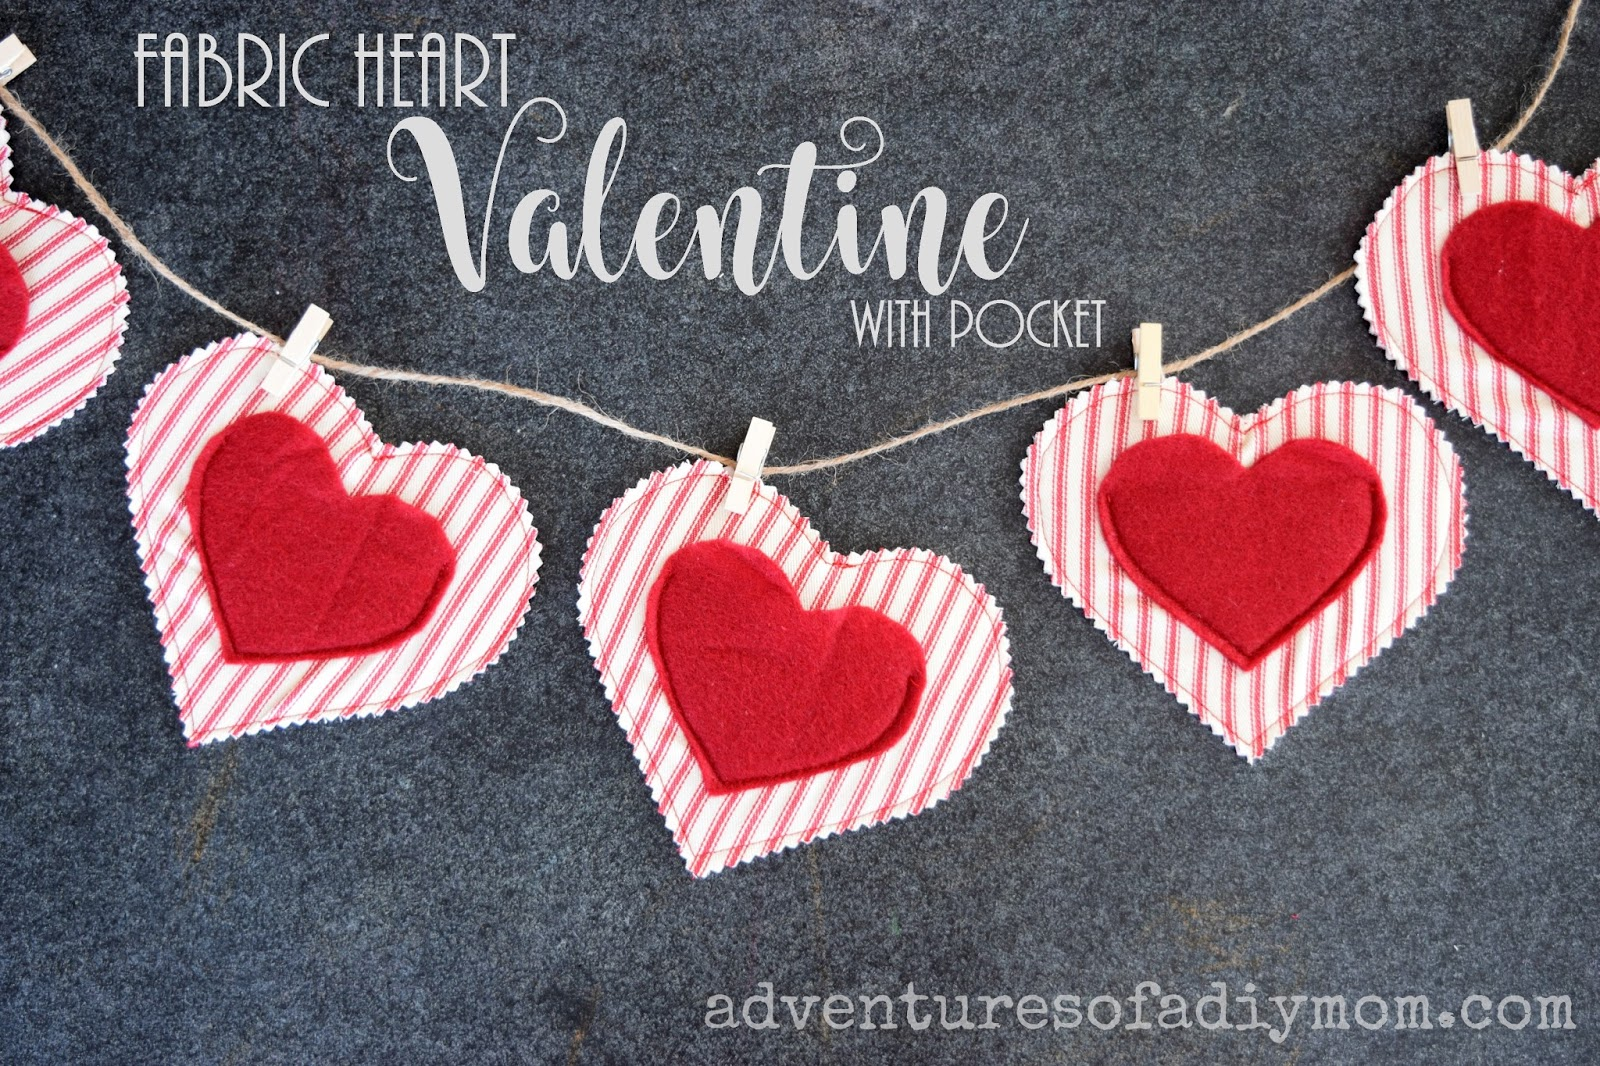 how to make a fabric heart valentine with a pocket adventures of